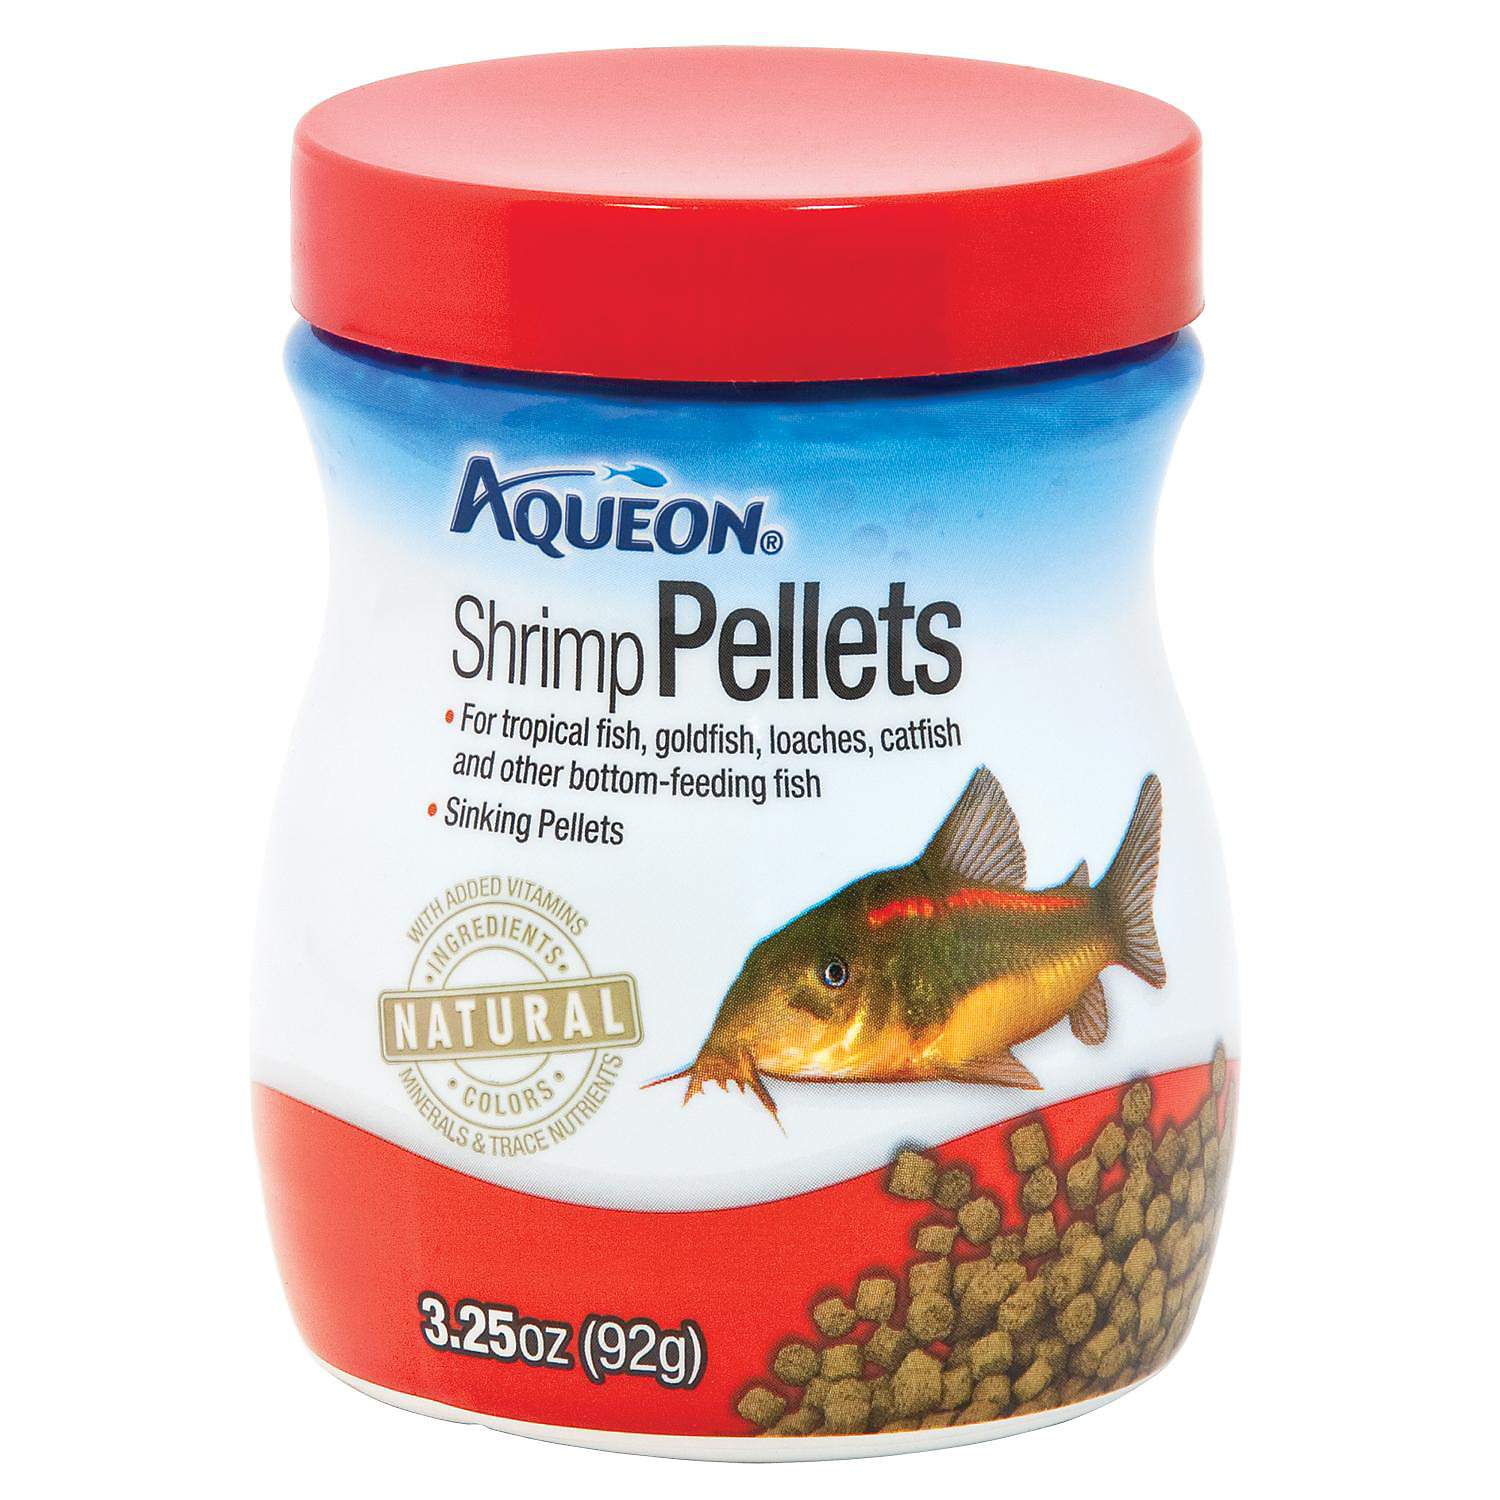 Aqueon Shrimp Pellets Fish Food 3.25 Oz.